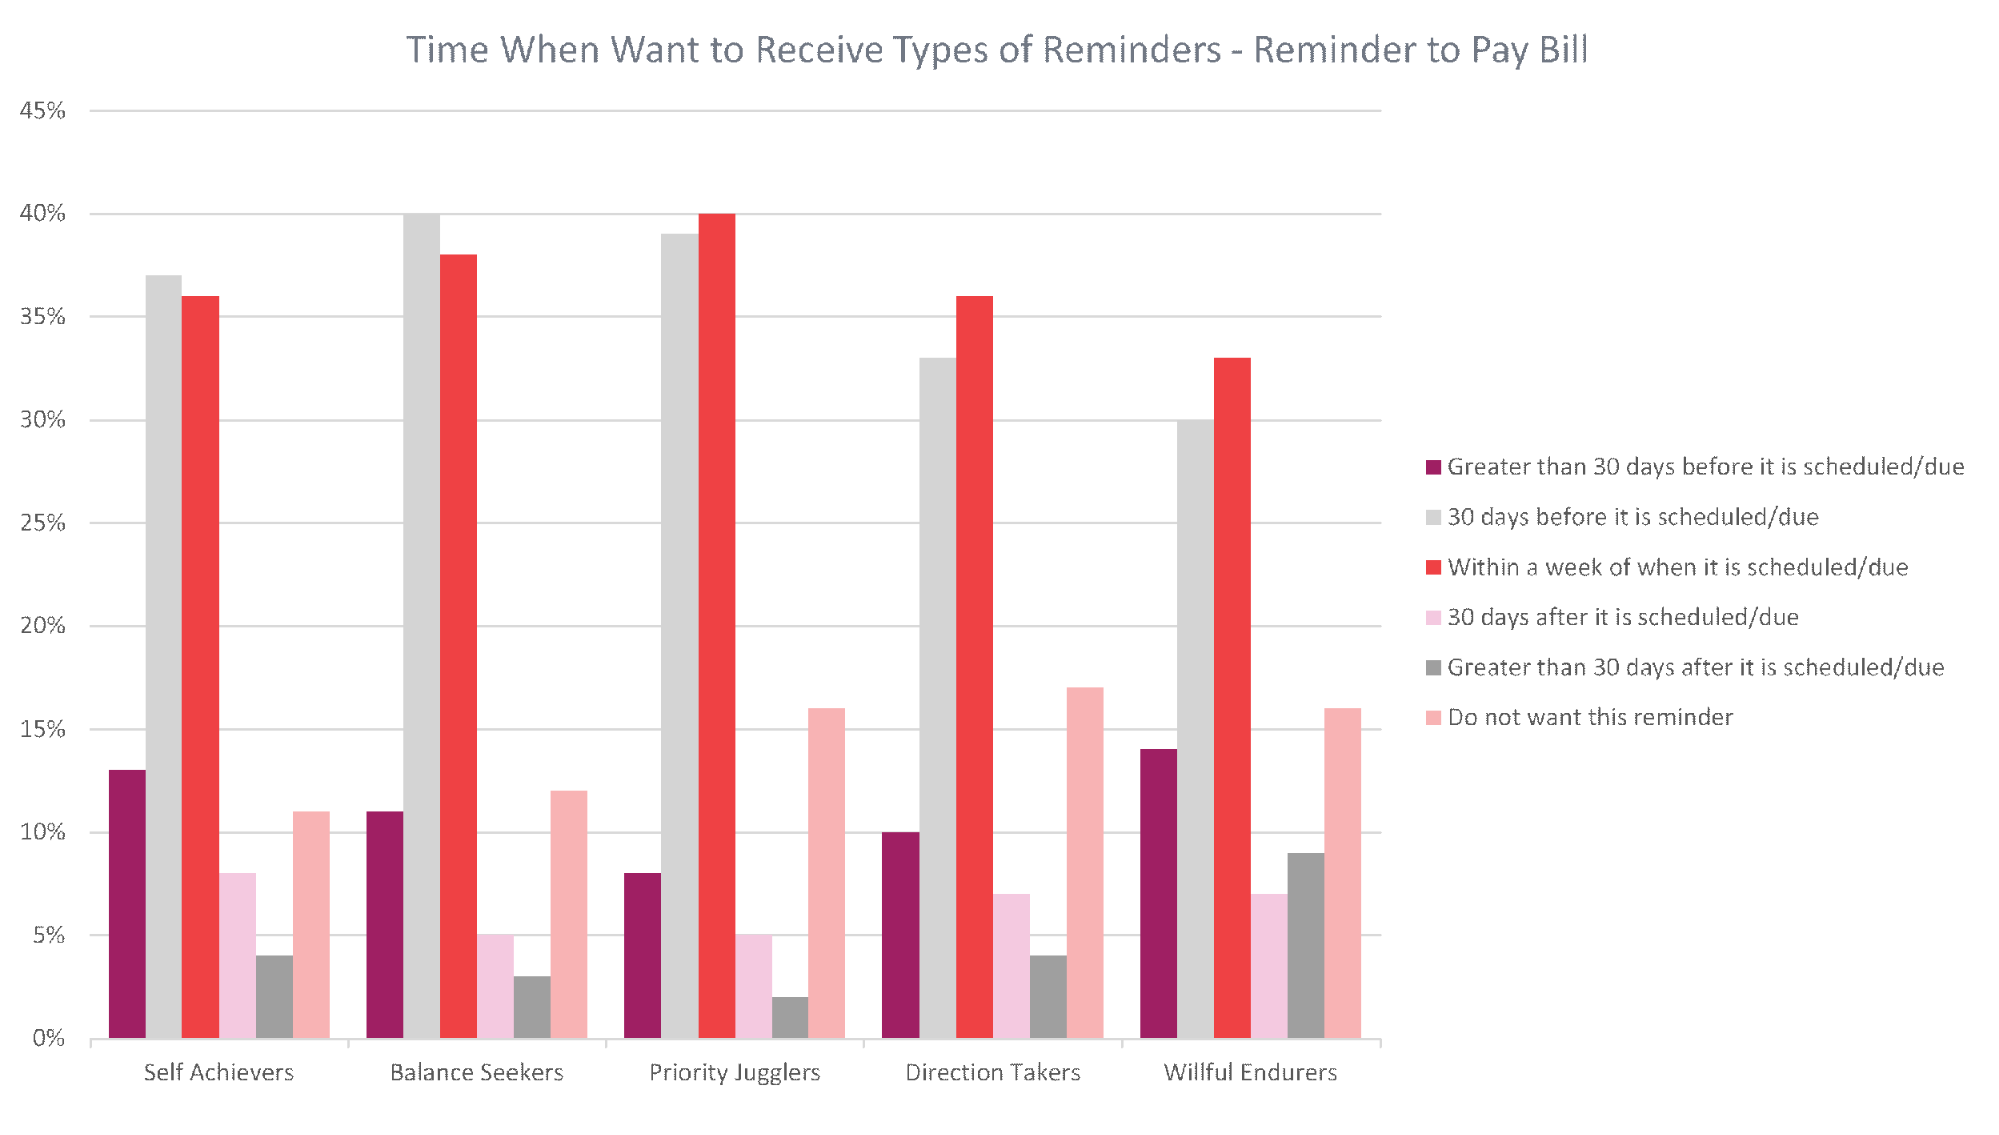 Time When Want to Receive Types of Reminders - Reminder to Pay Bill